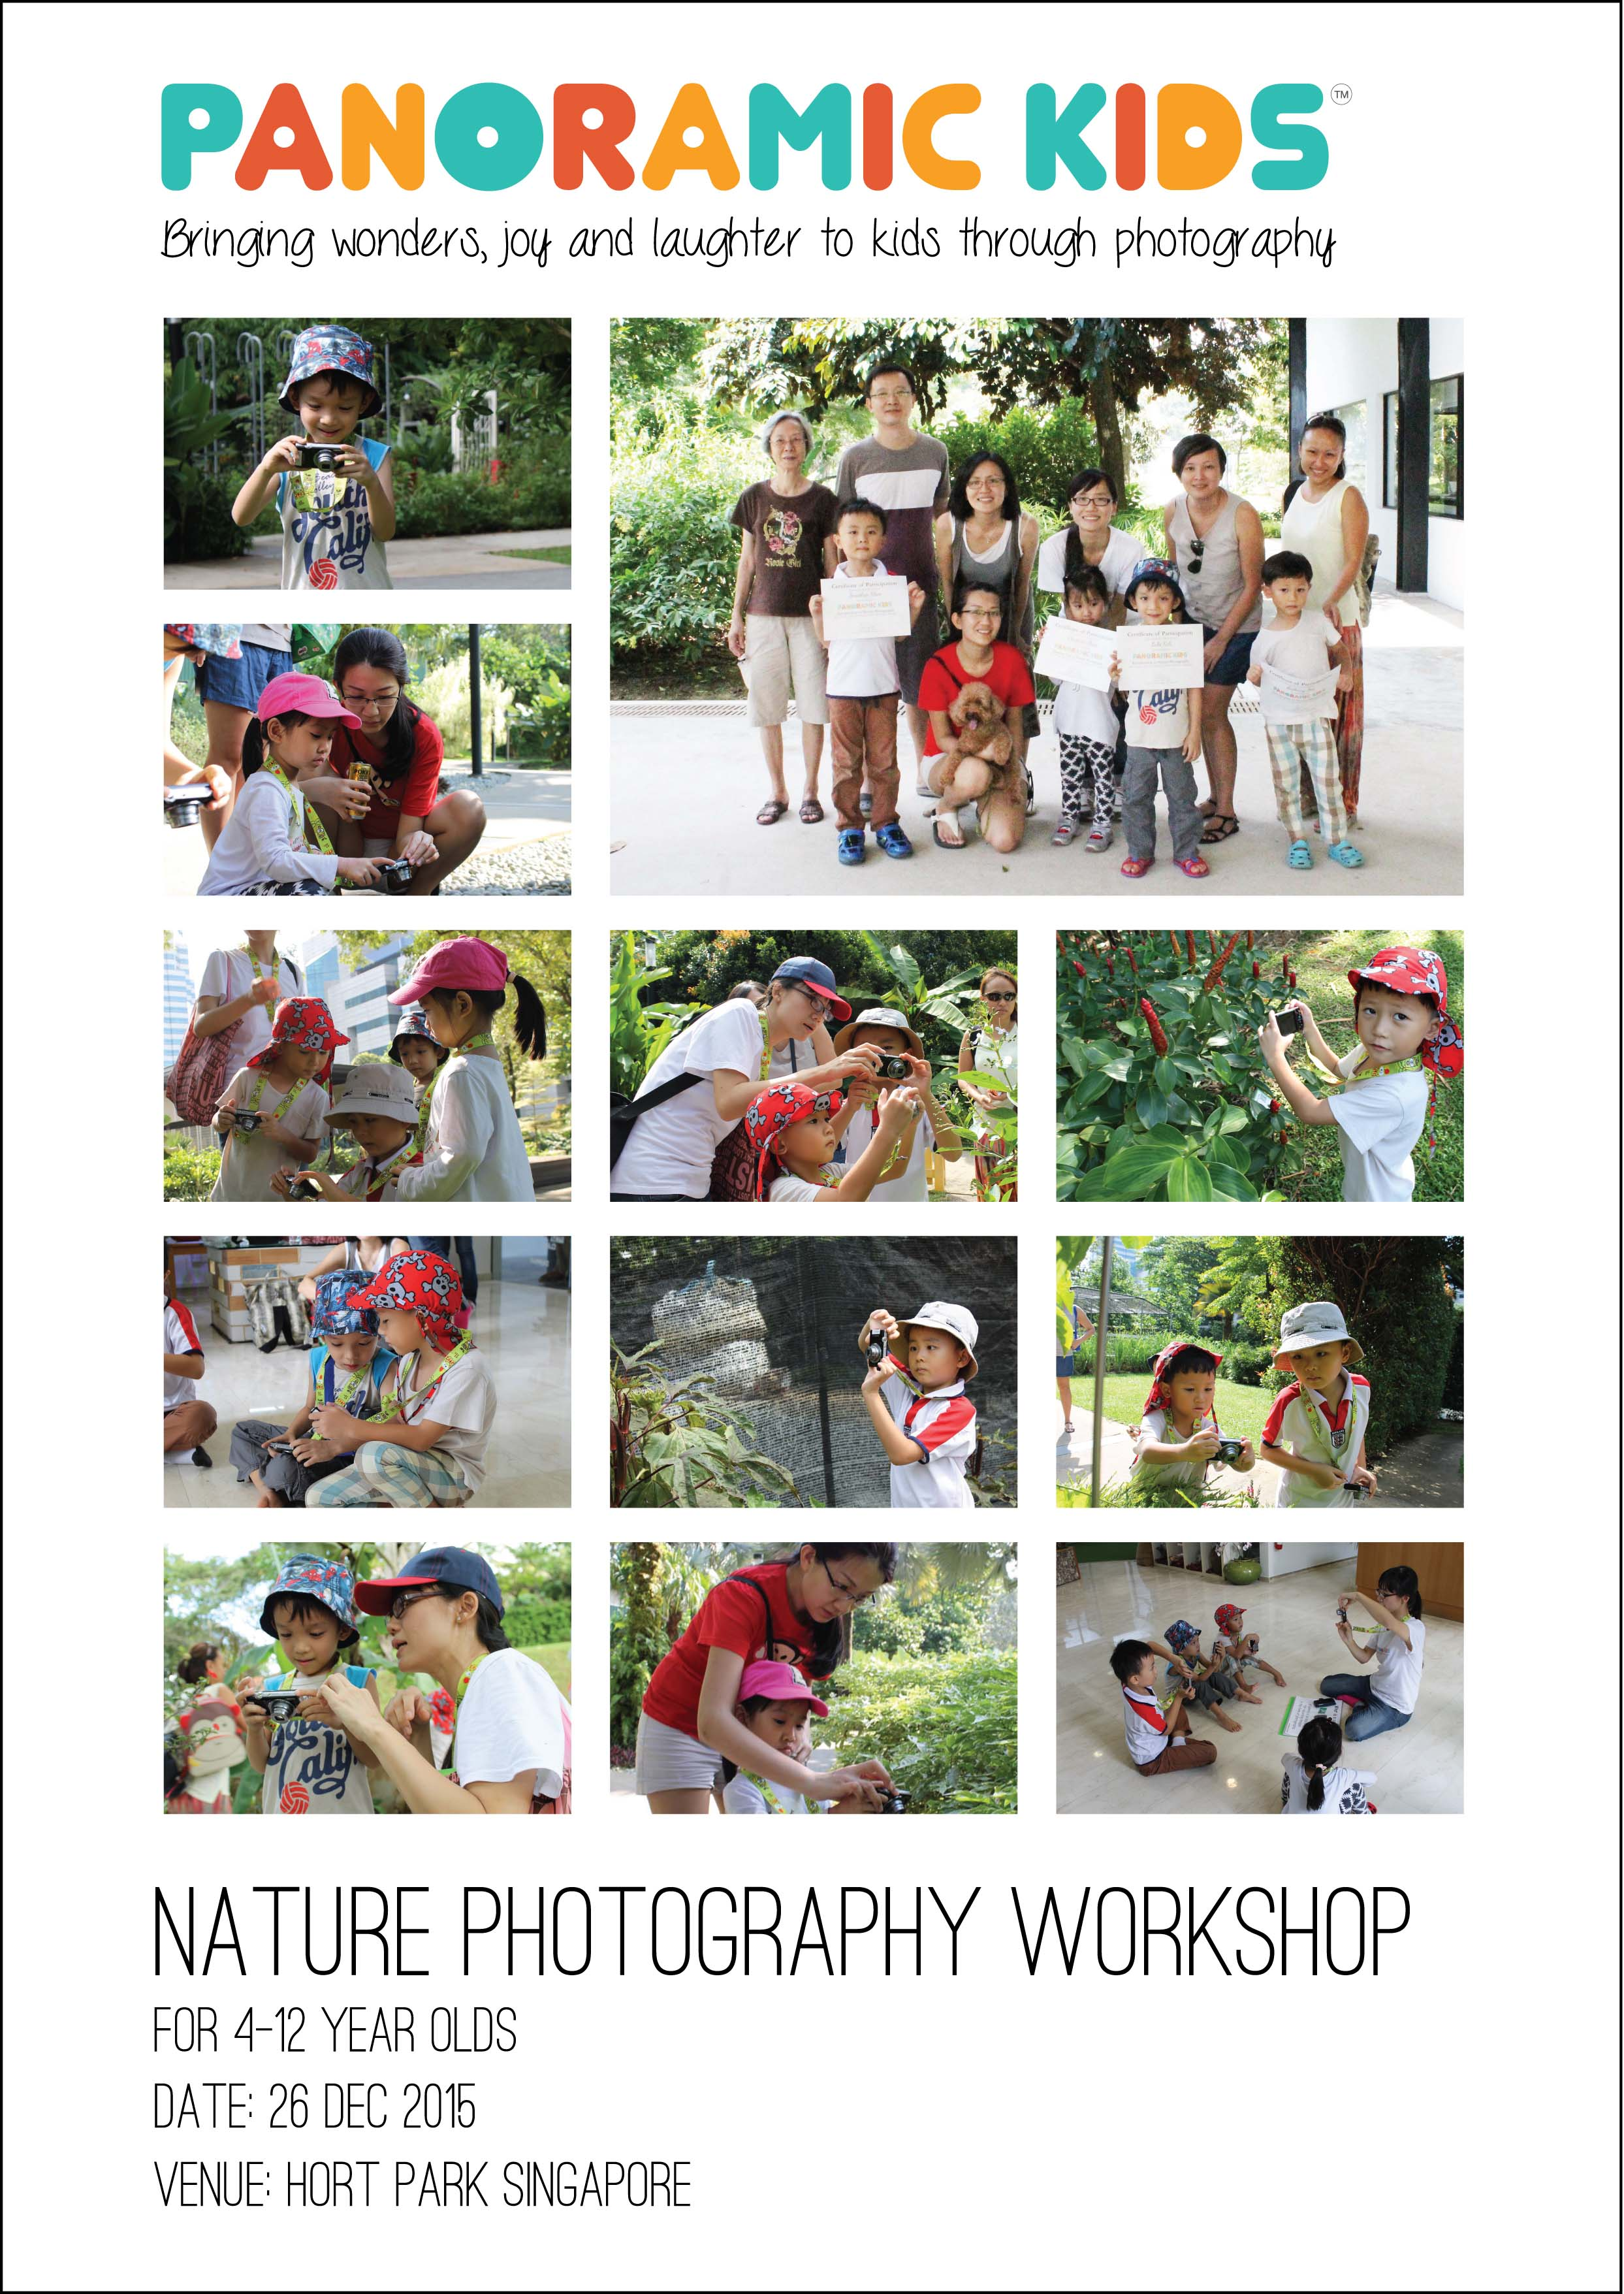 Template for students at work_Hort Park 26 Dec 2015